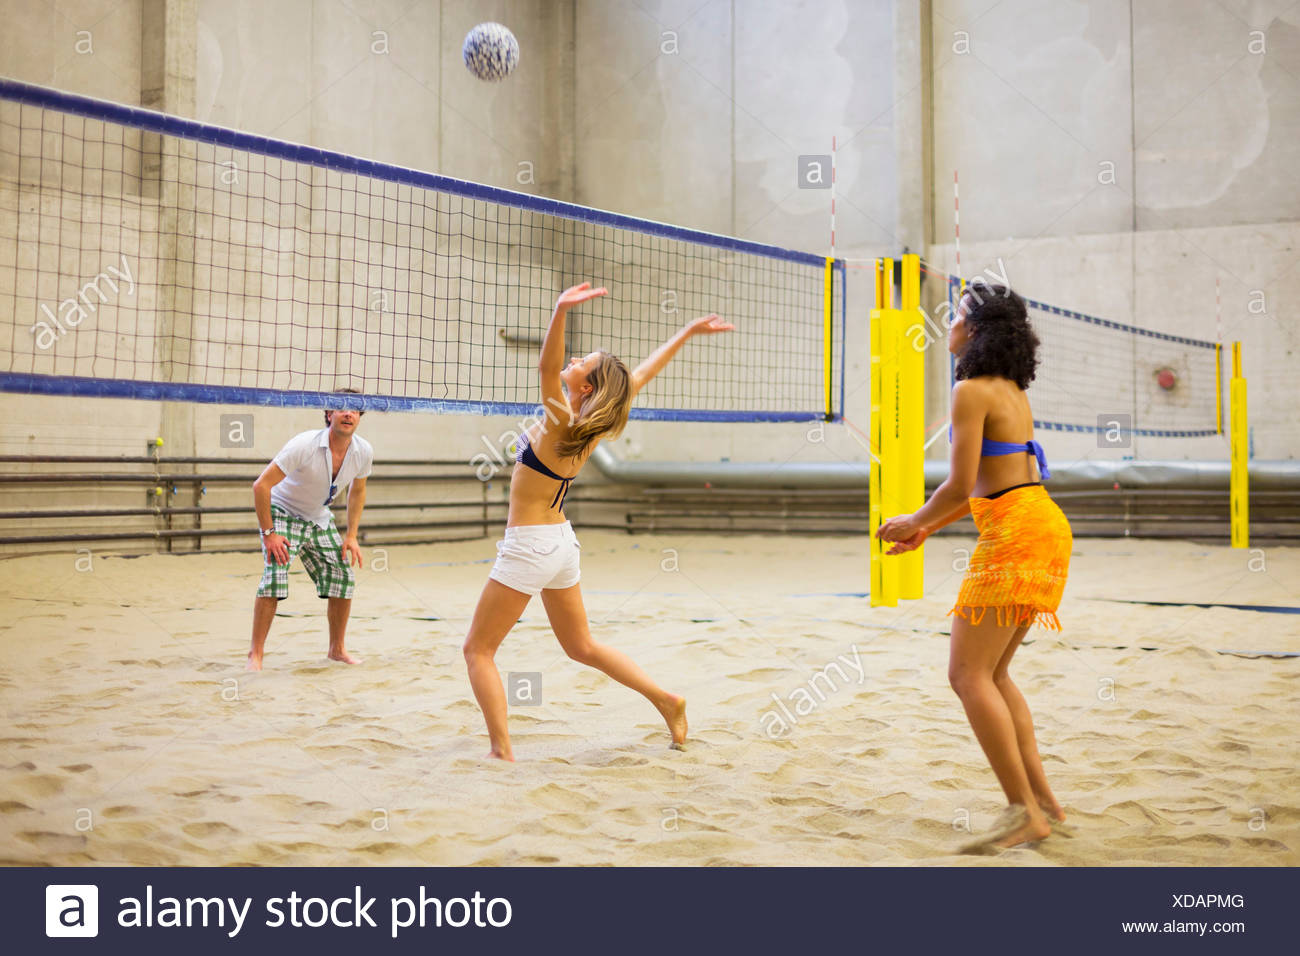 Amis jouant indoor beach-volley Photo Stock